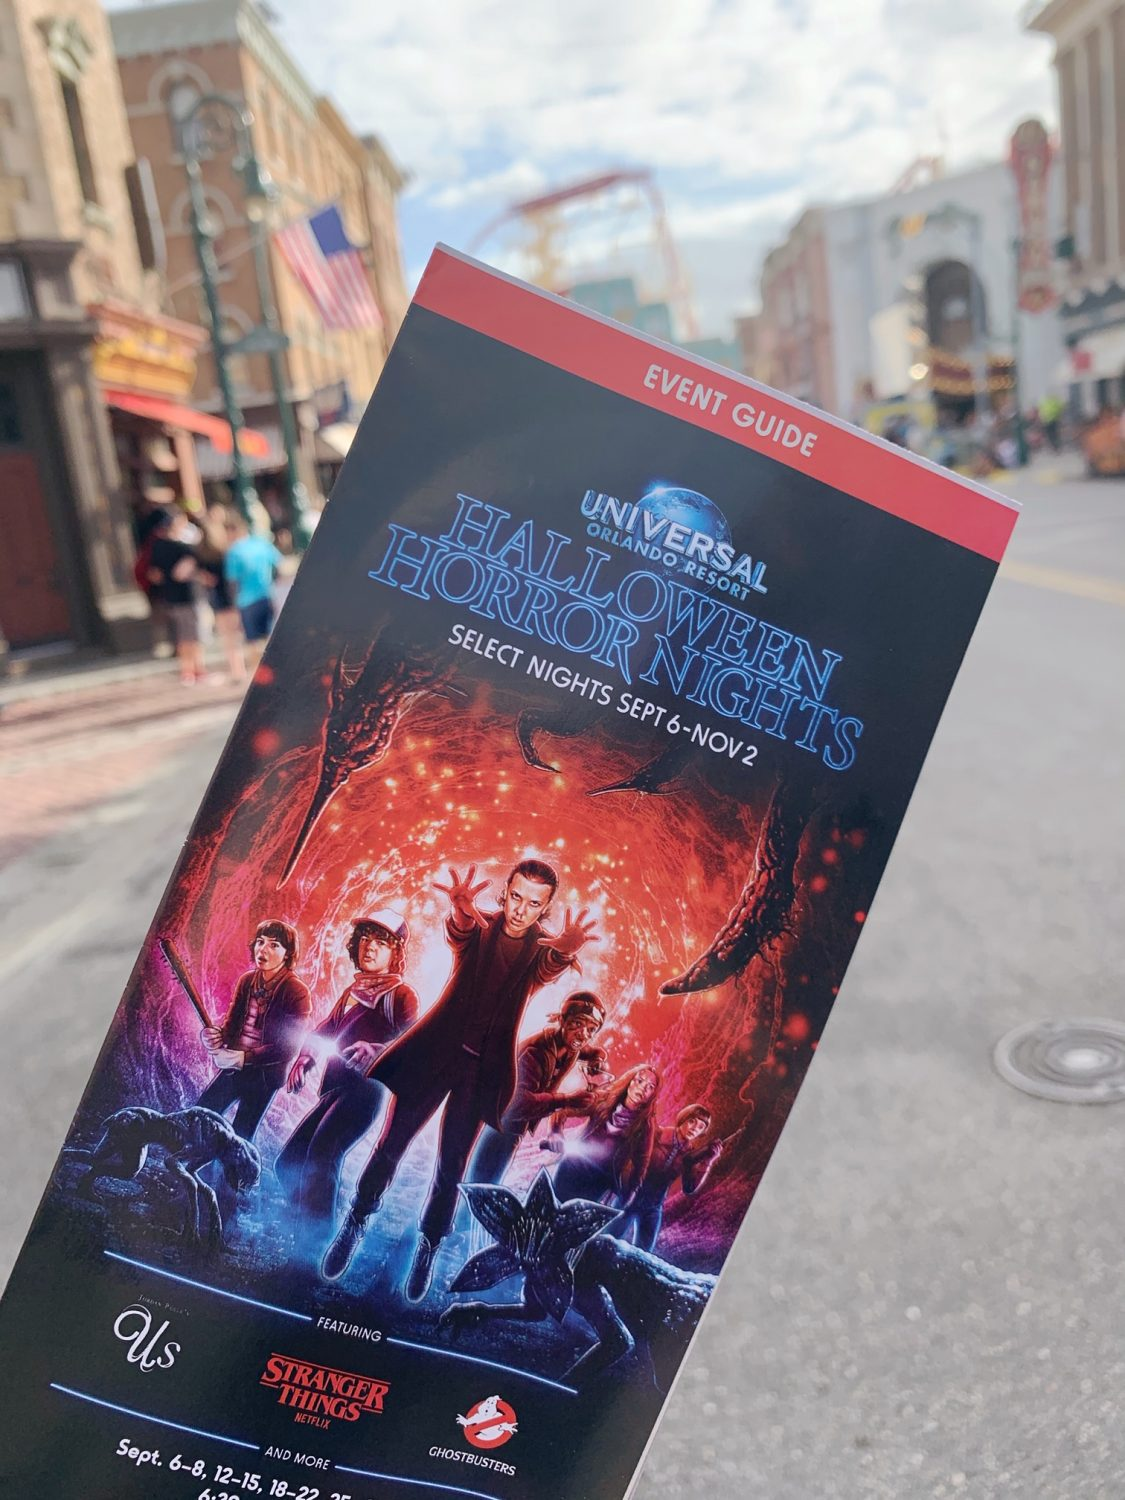 Tips For Surviving Halloween Horror Nights at Universal Orlando